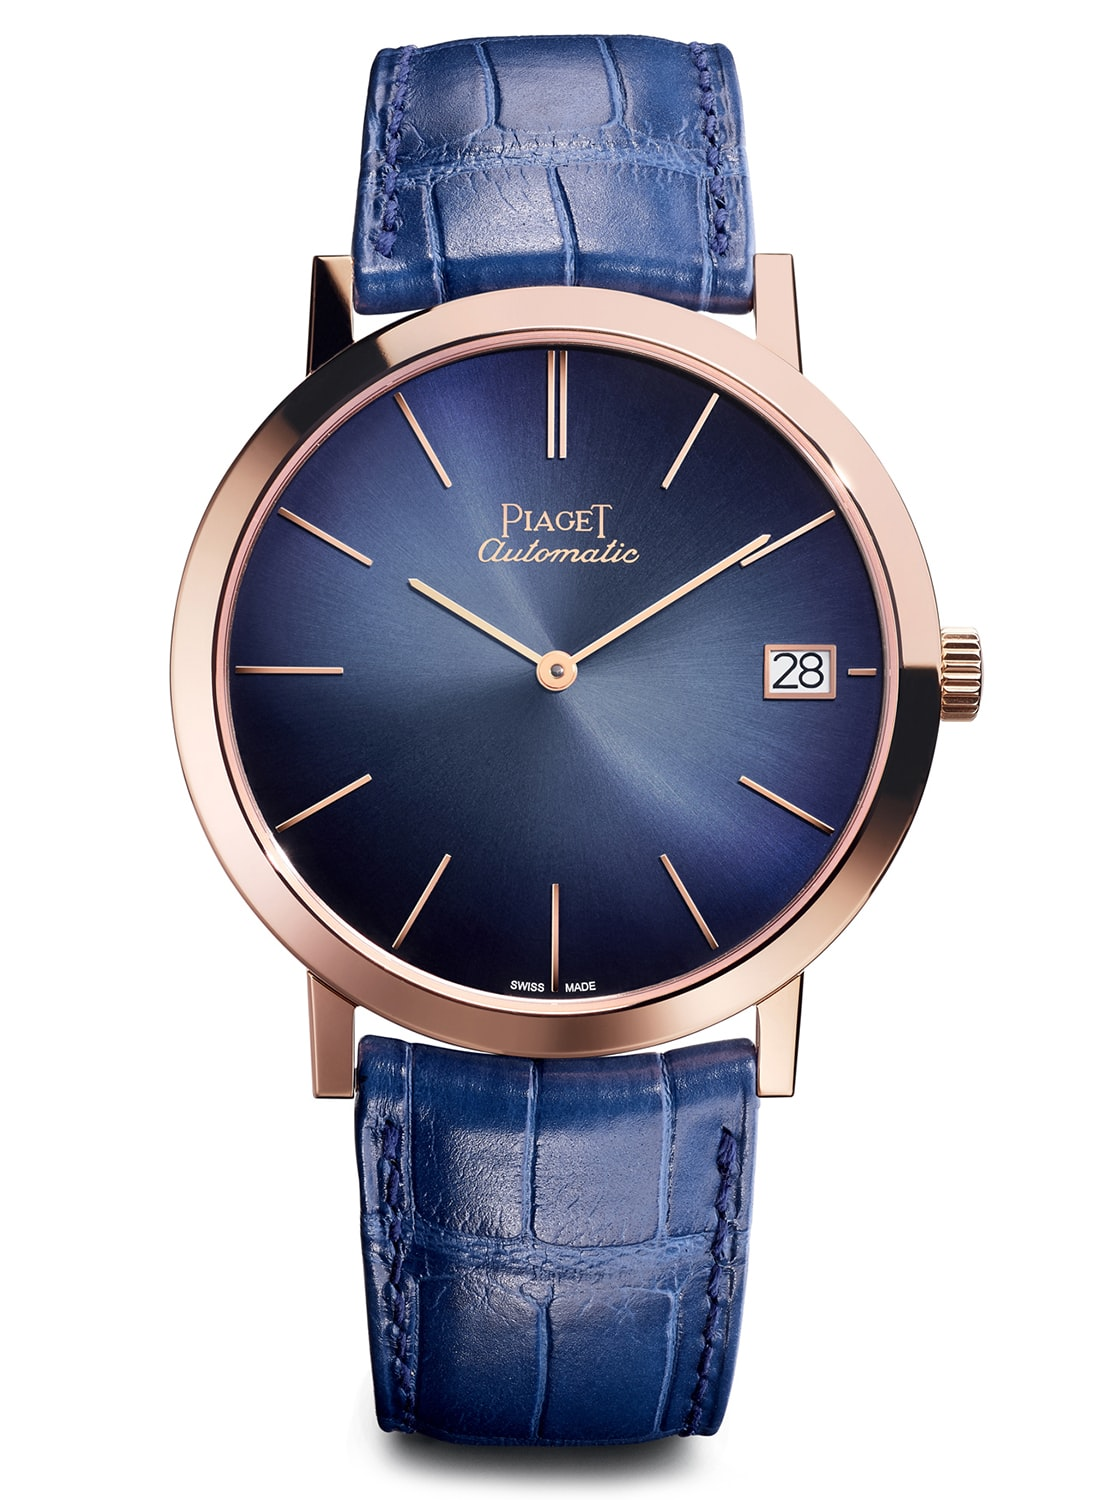 Rose gold with blue dial Altiplano with date 40mm. Introducing: The Piaget Altiplano Automatic With Date, Going Back To The Roots Of Piaget (Live Pics + Pricing) Introducing: The Piaget Altiplano Automatic With Date, Going Back To The Roots Of Piaget (Live Pics + Pricing) piaget 1